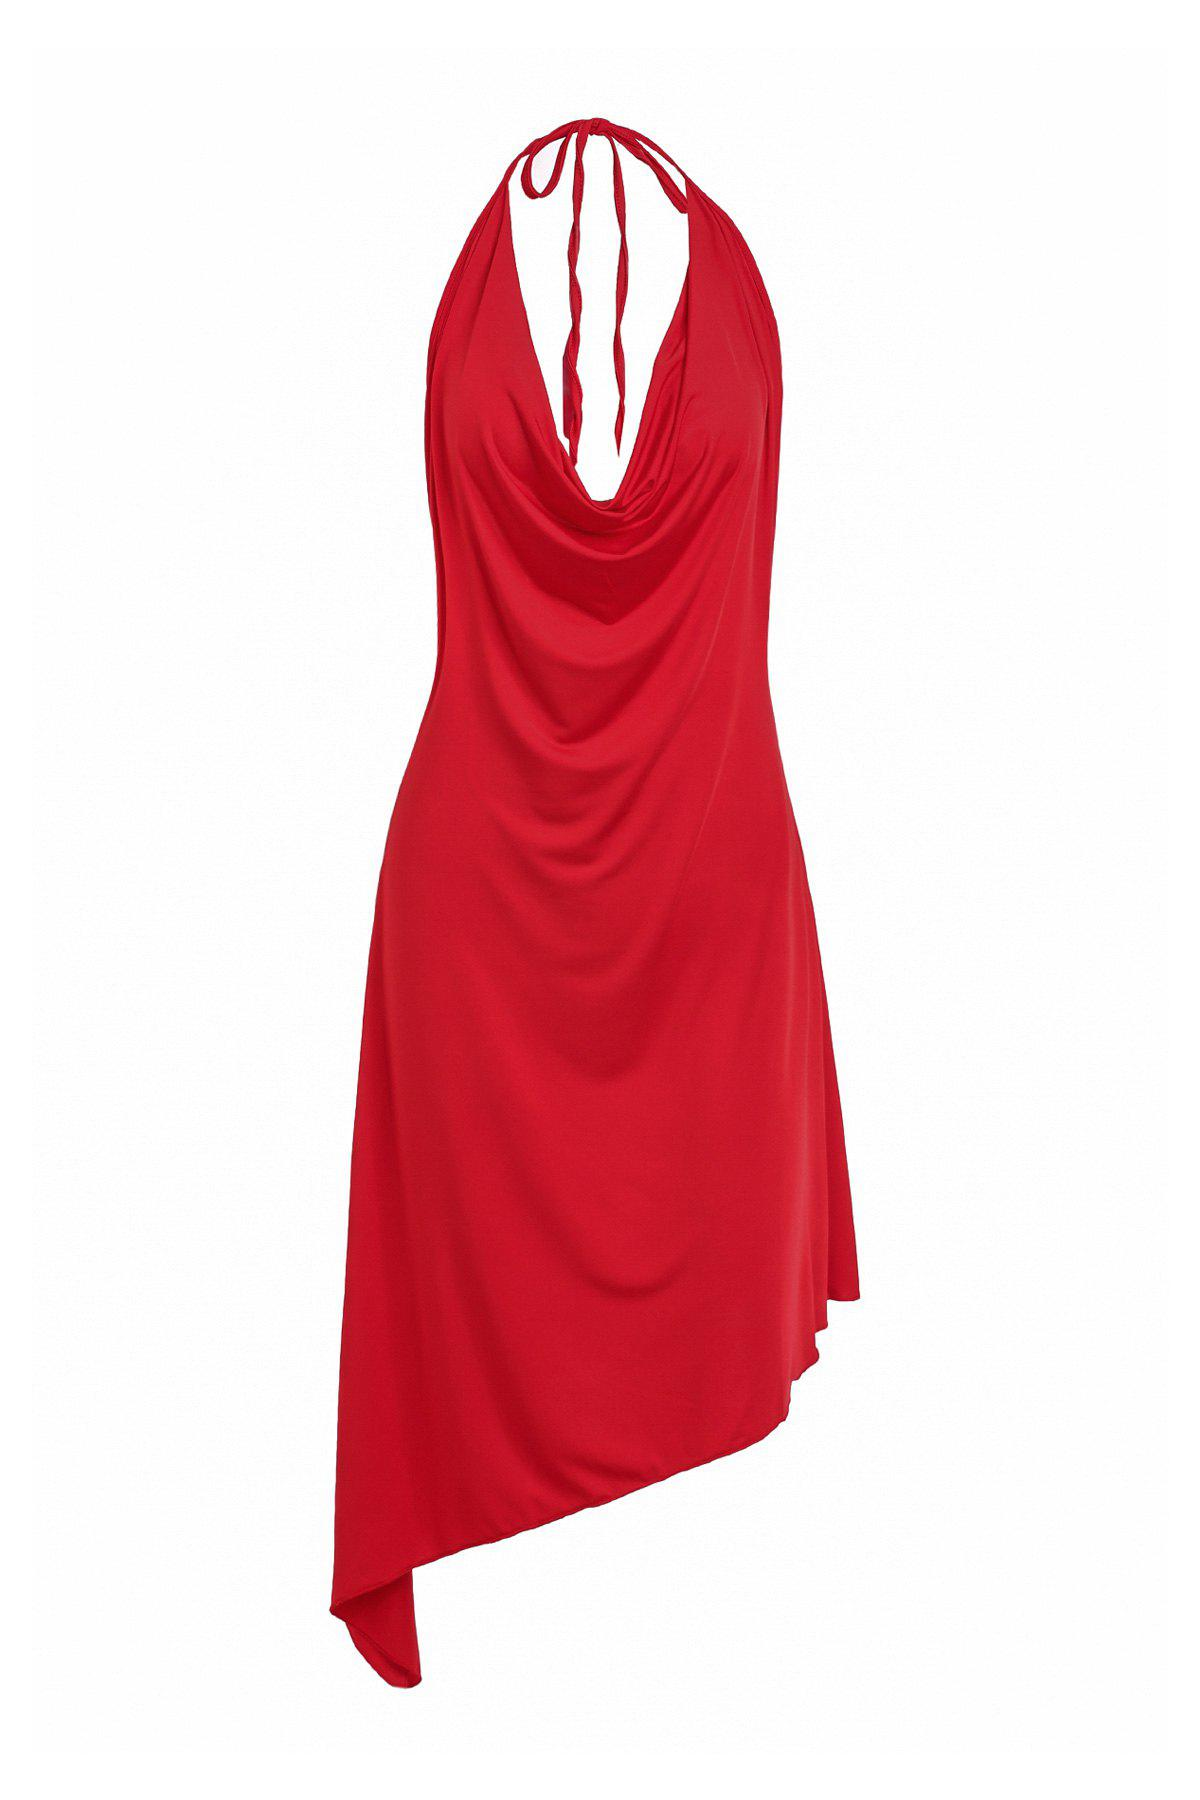 Trendy Halter Solid Color Backless Asymmetrical Women's Dress - RED M